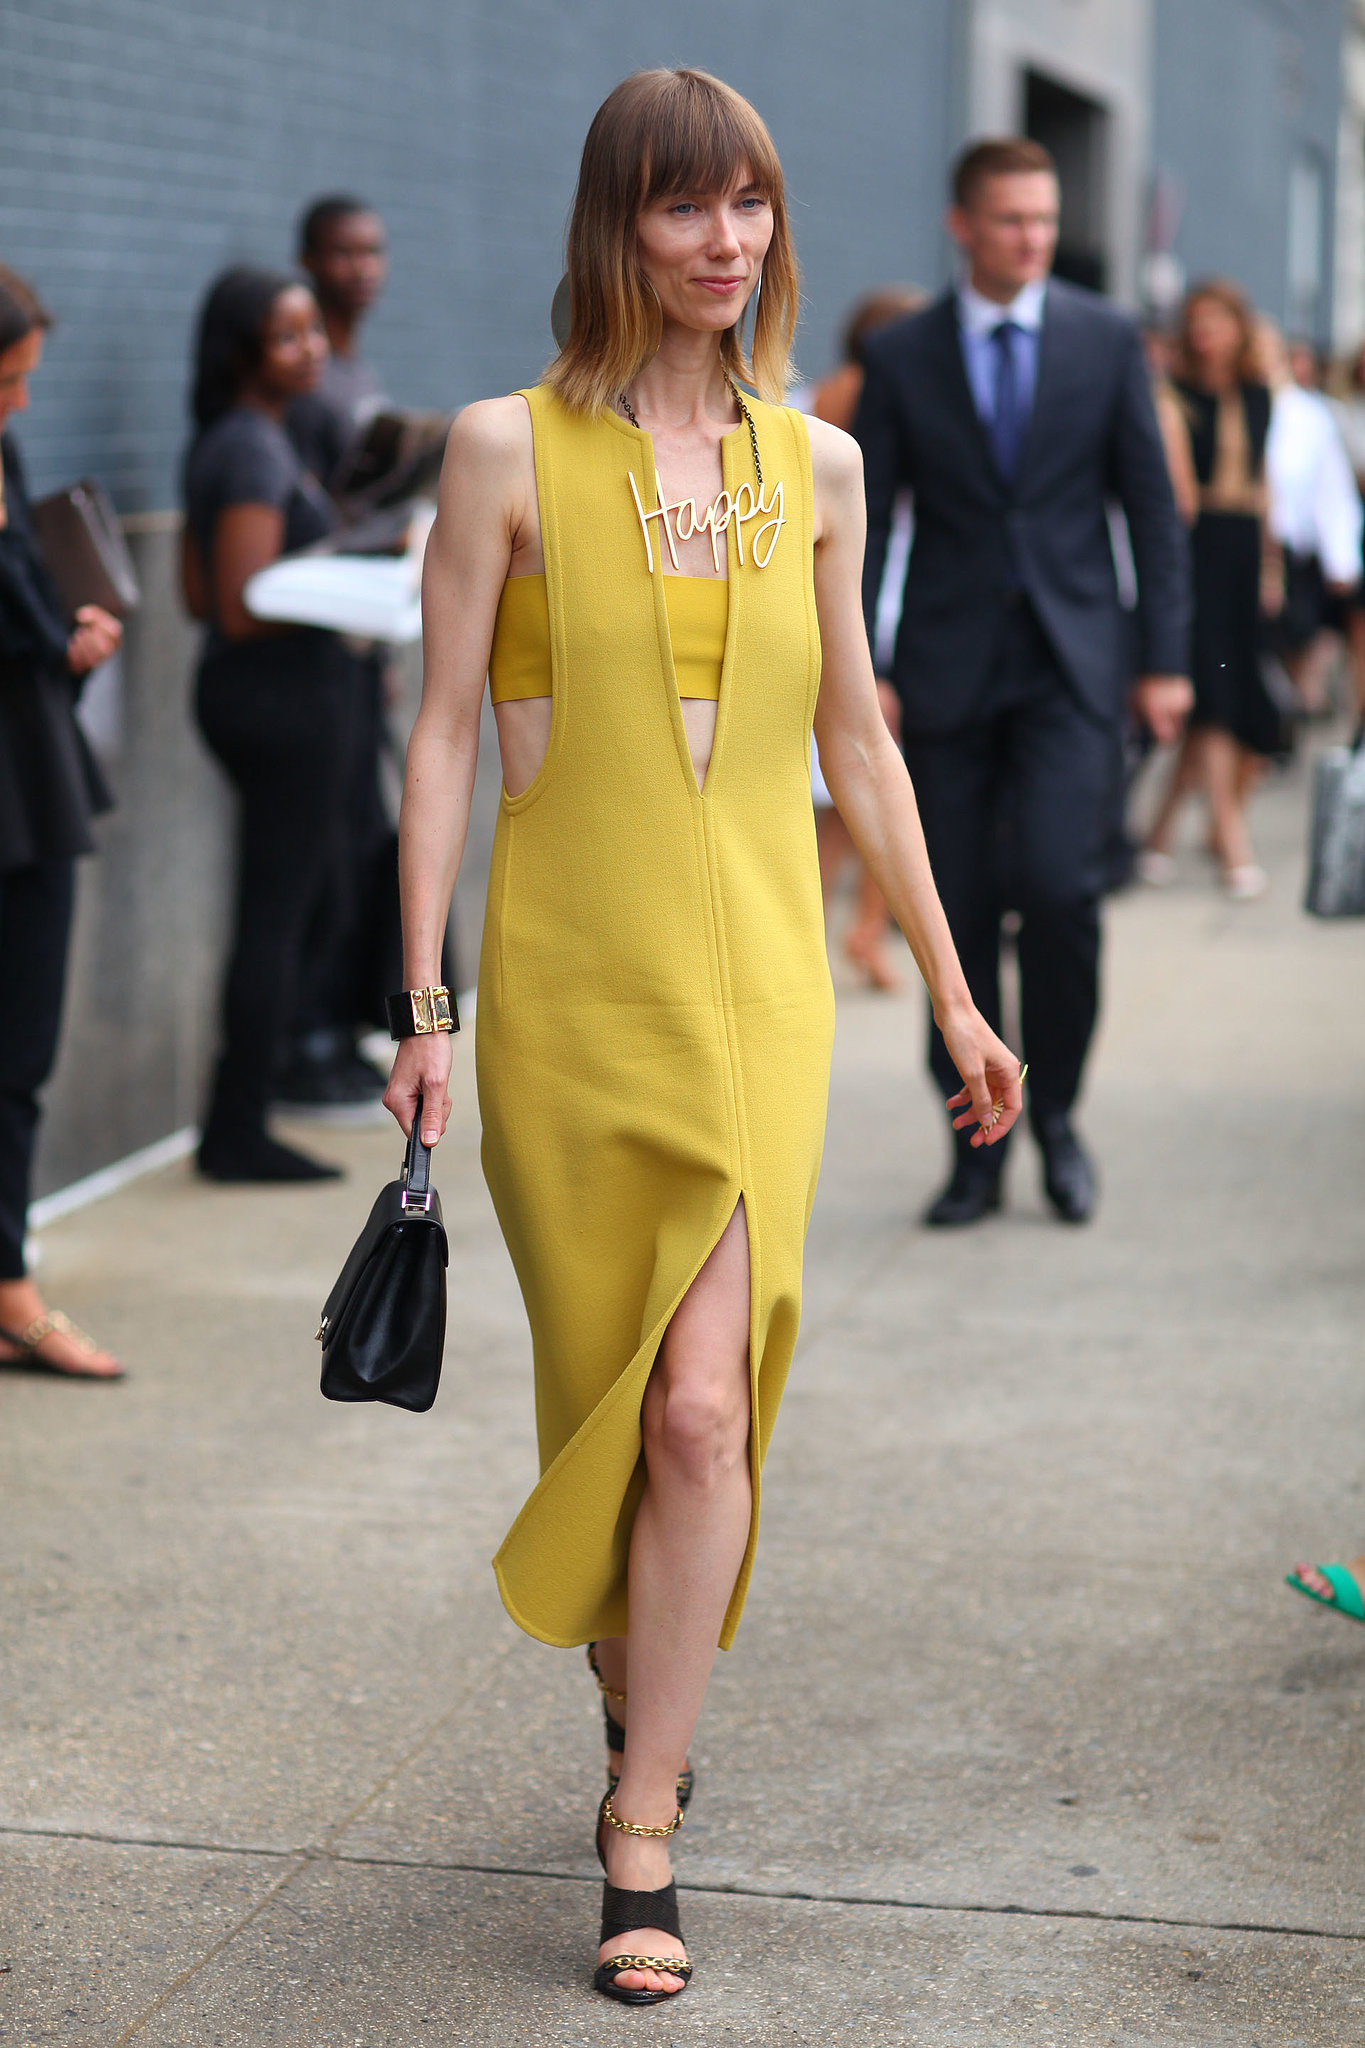 Anya Ziourova made us happy in her sunny yellow dress.